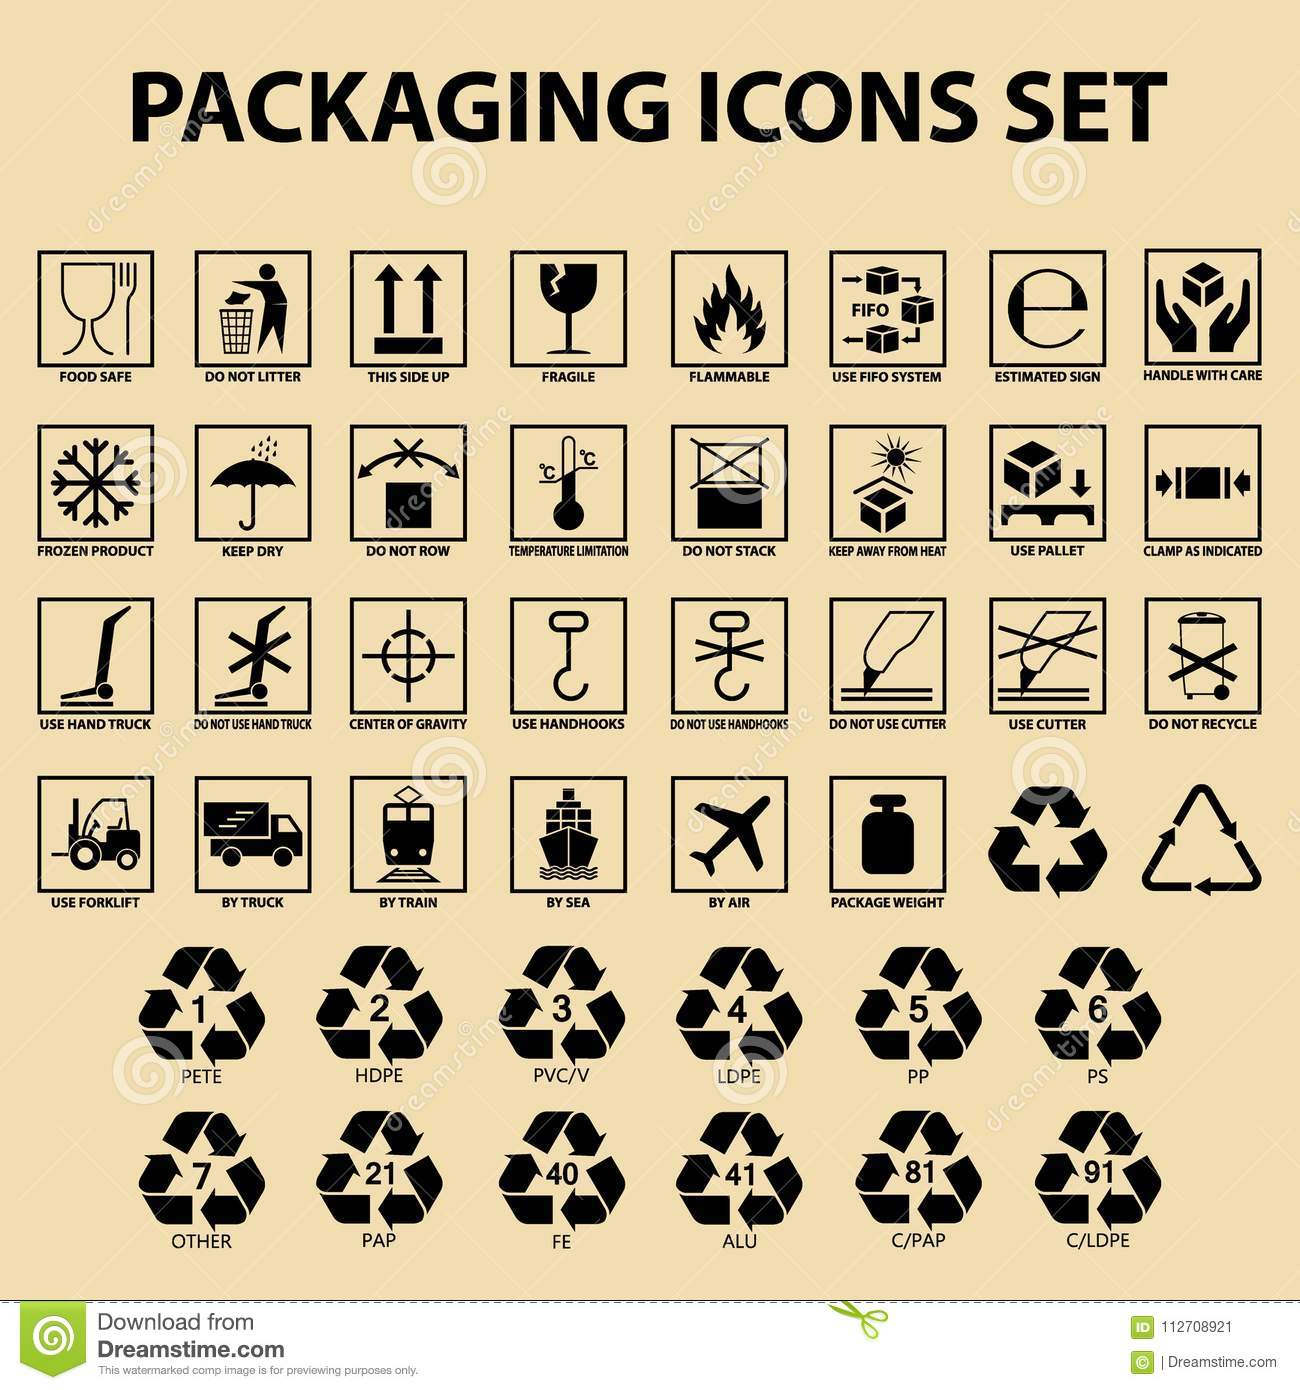 Et of packaging icons, packing cargo labels, delivery service symbols